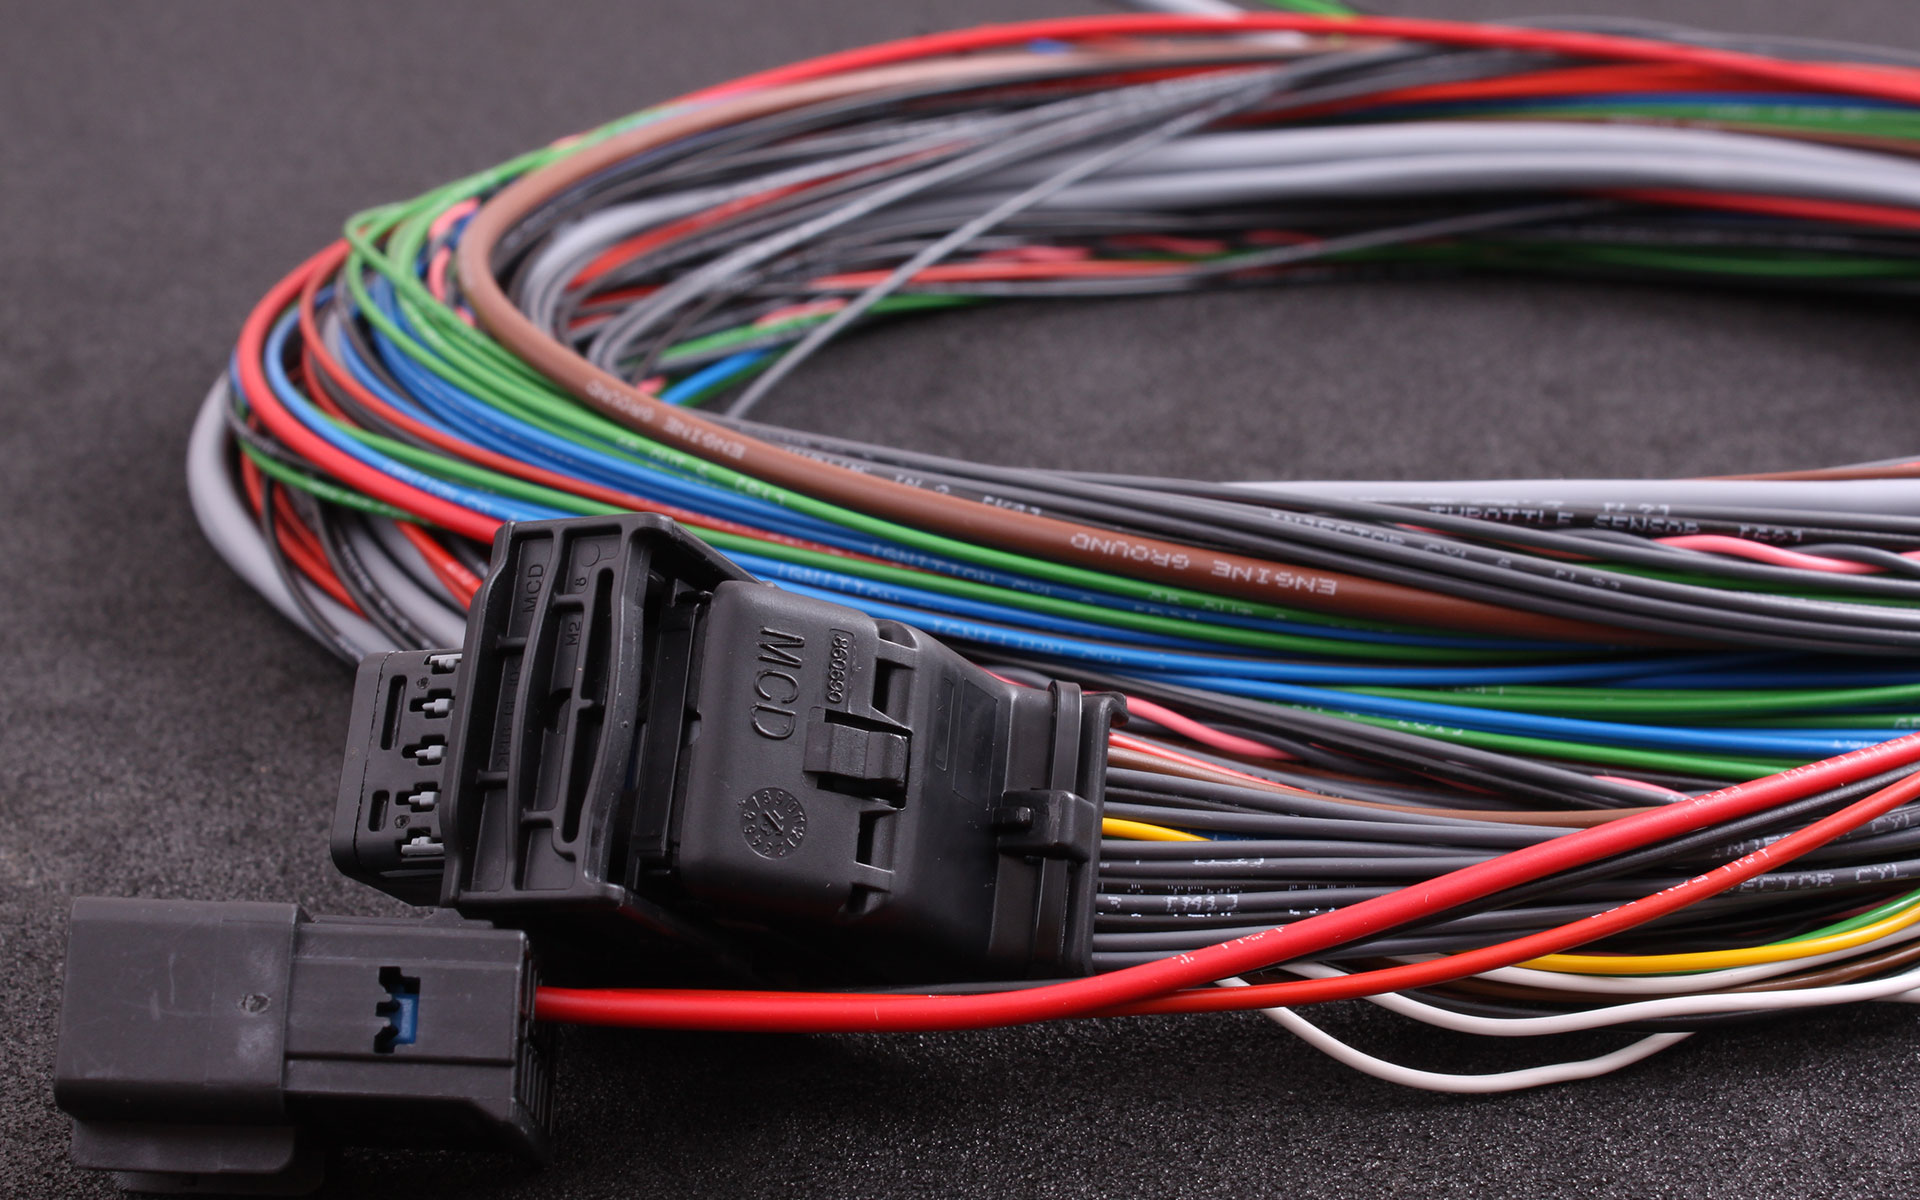 Maxxecu V1 Advanced Engine Control System Race Car Wiring All Consists Of High Quality Automotive Thin Wall Cable Cables Are Labeled With Their Functions We Have Done Everything For A Stress